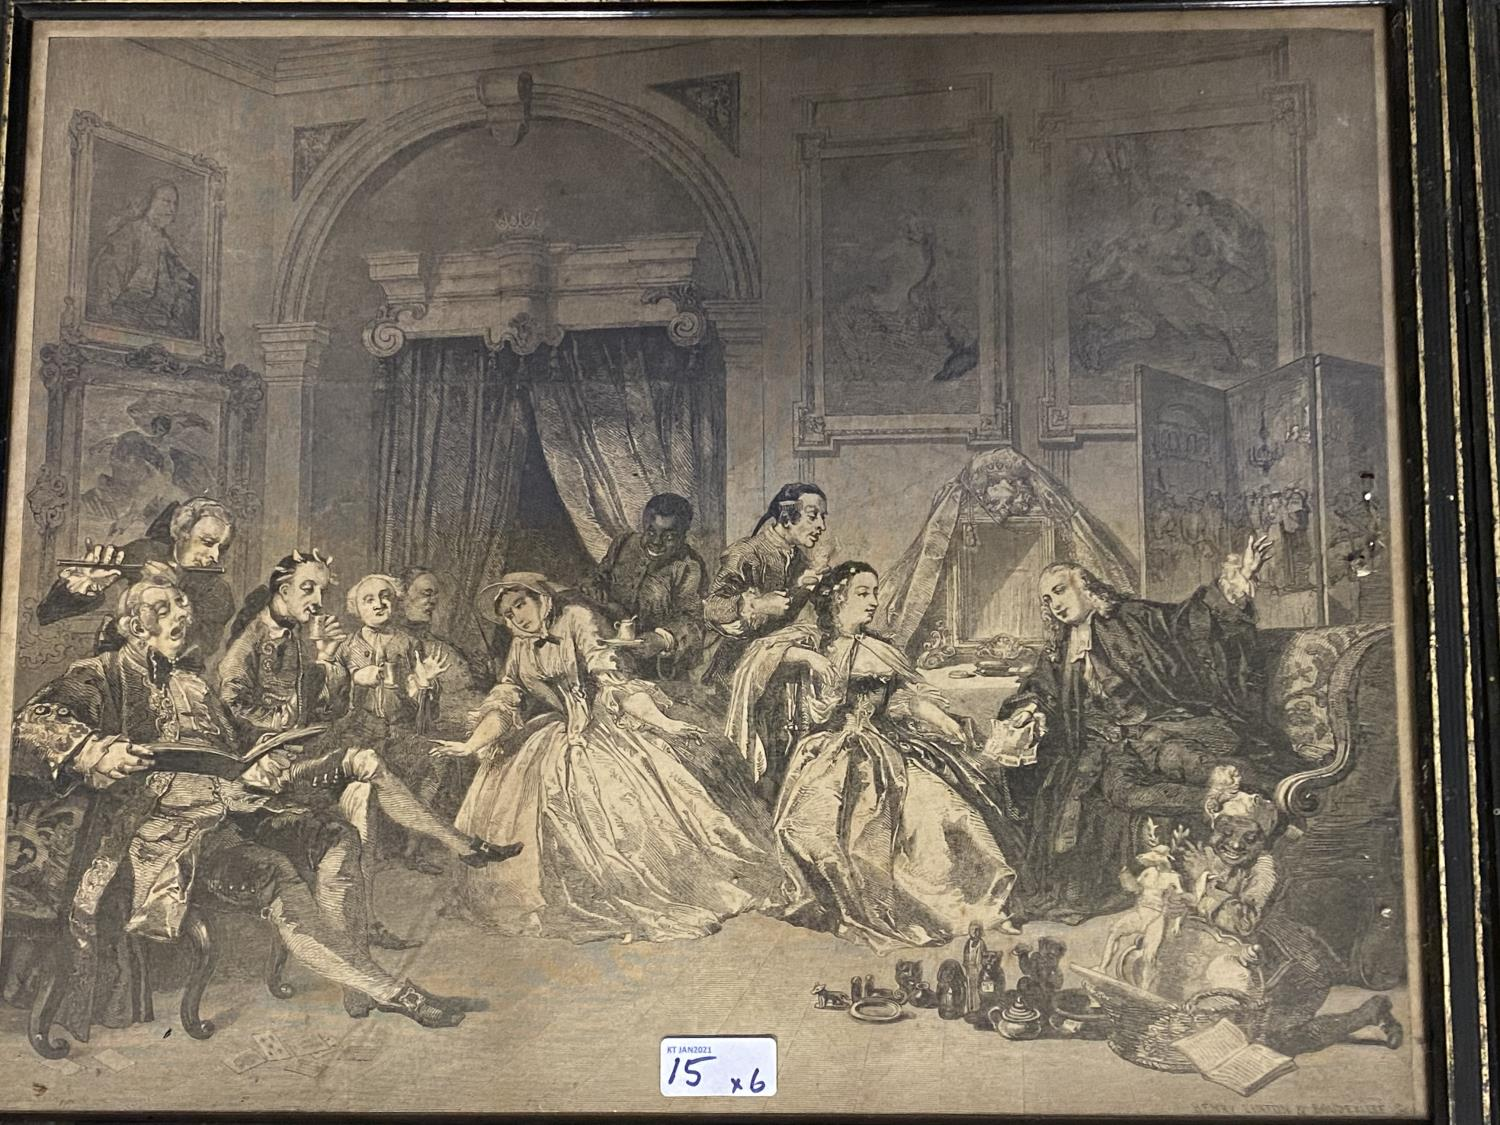 Six Hogarth black and white engravings, various plates, including Marriage a la Mode, in original - Image 2 of 8